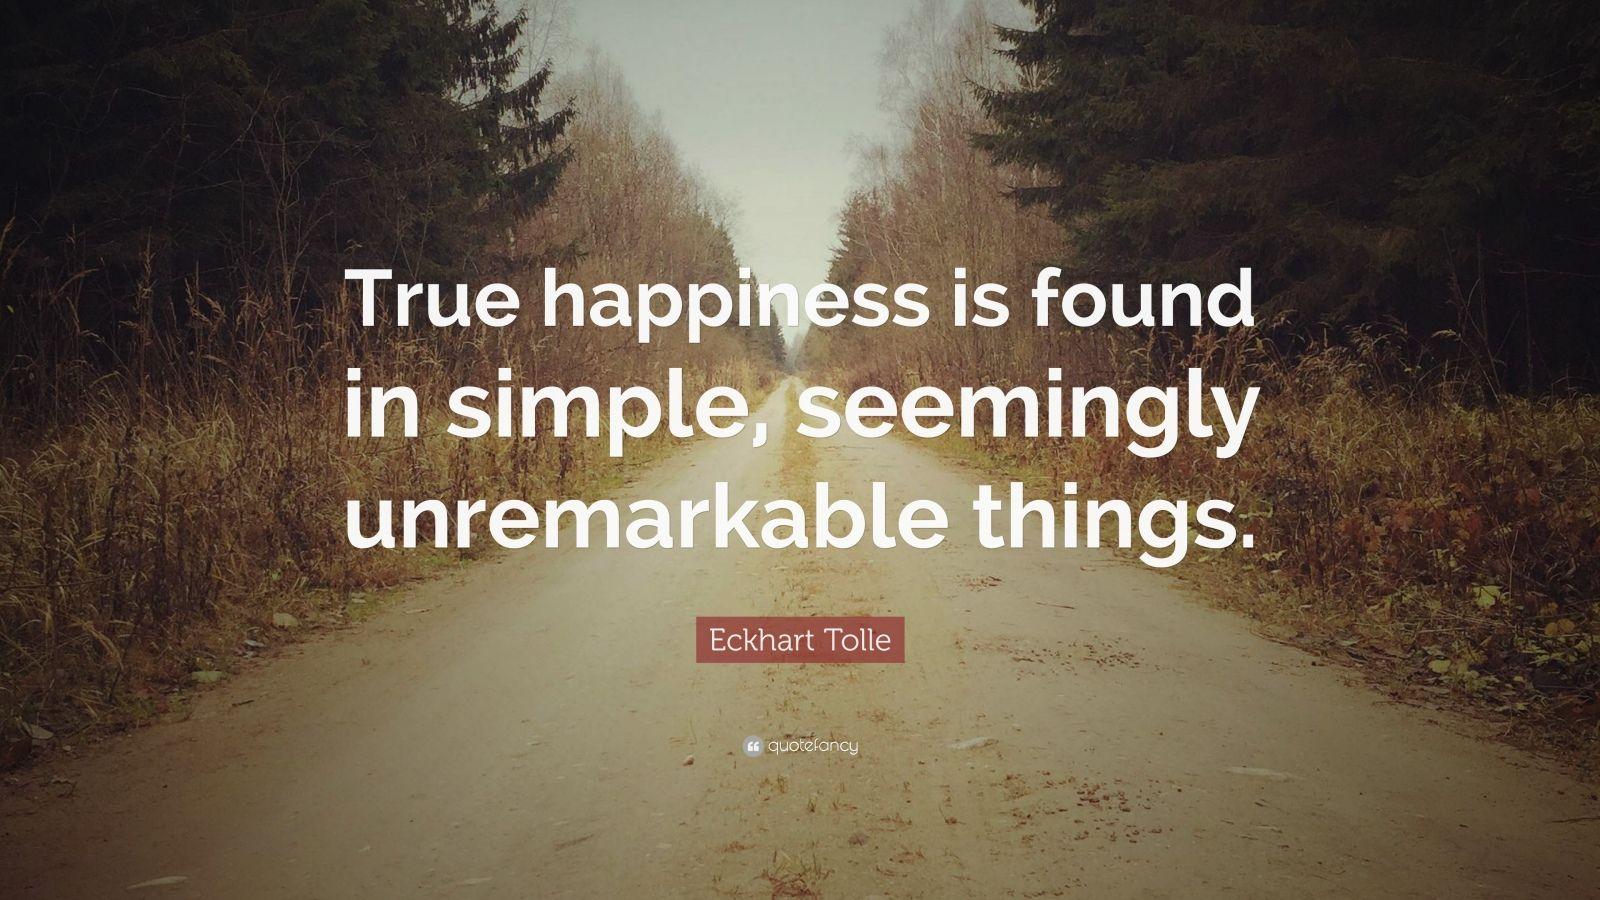 Mother Teresa Quotes Wallpapers Eckhart Tolle Quote True Happiness Is Found In Simple